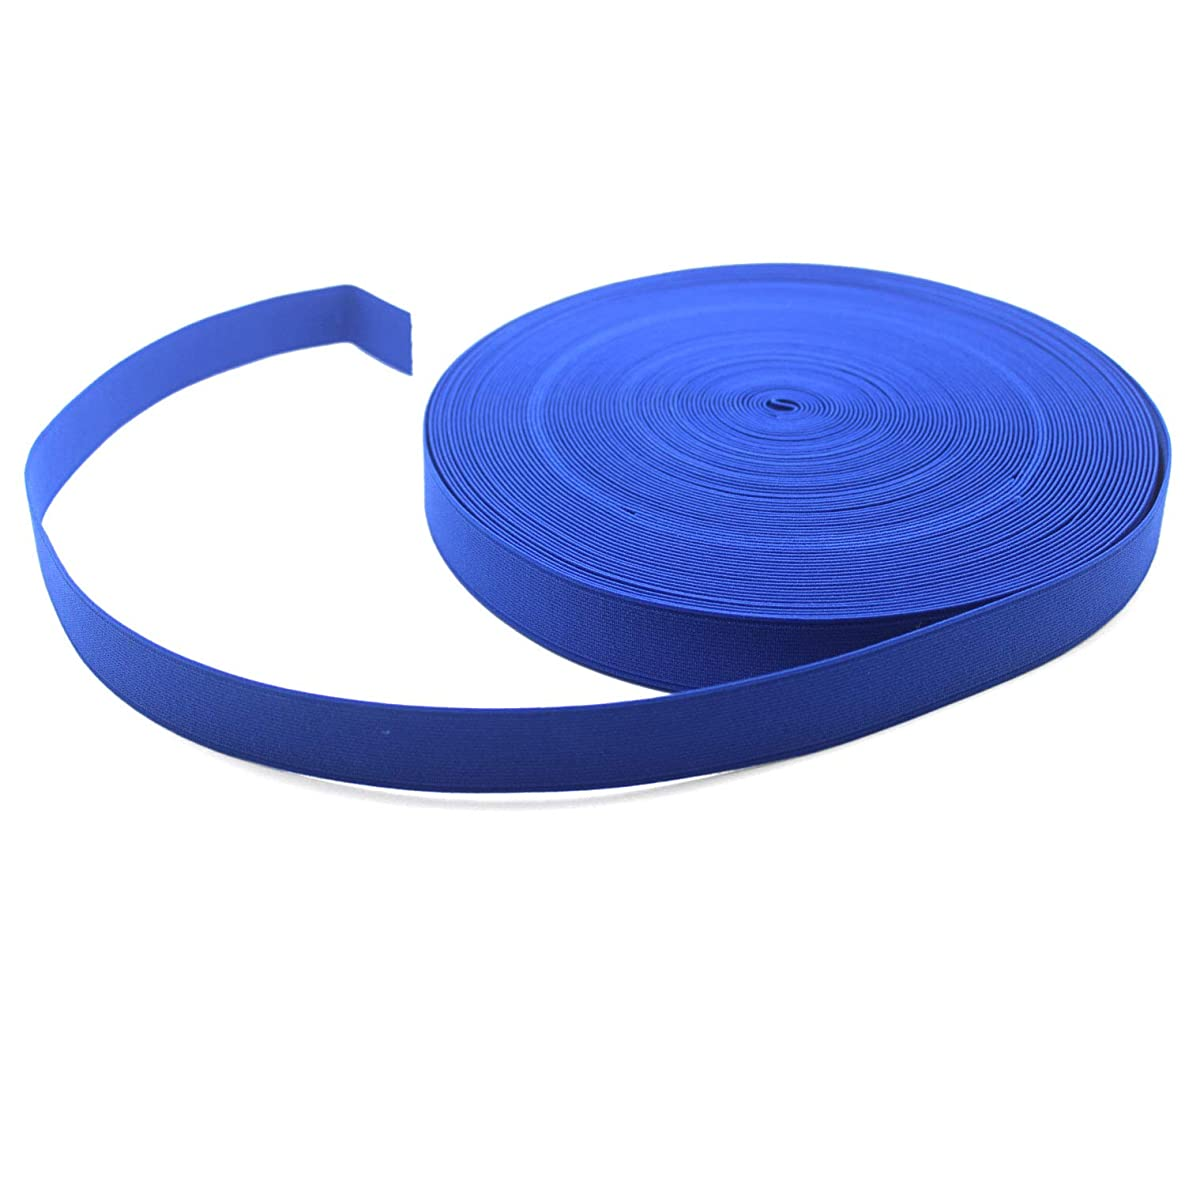 Yzsfirm 1 Inch High Elastic Band,30 Yards Elastic Spool Knit Bands Blue Braided Band for Sewing and Hair Wigs with Heavy Stretch